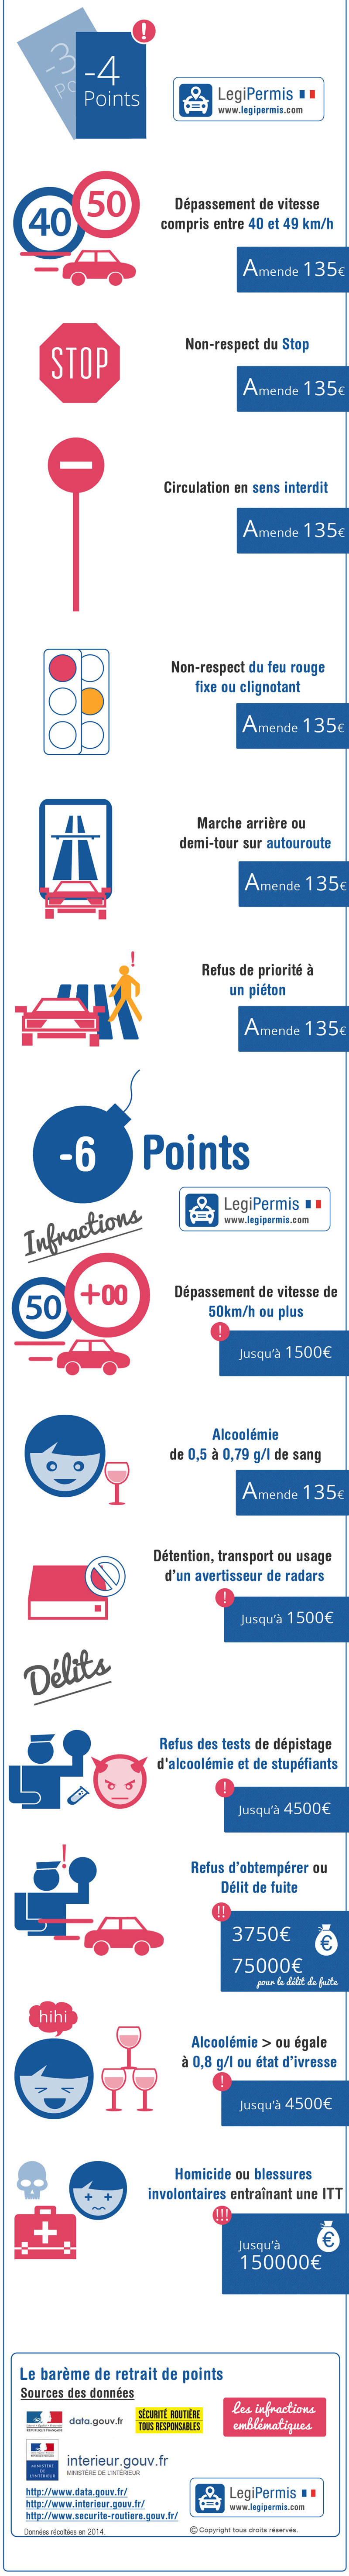 infographie perte de points infractions 4 à 6 points